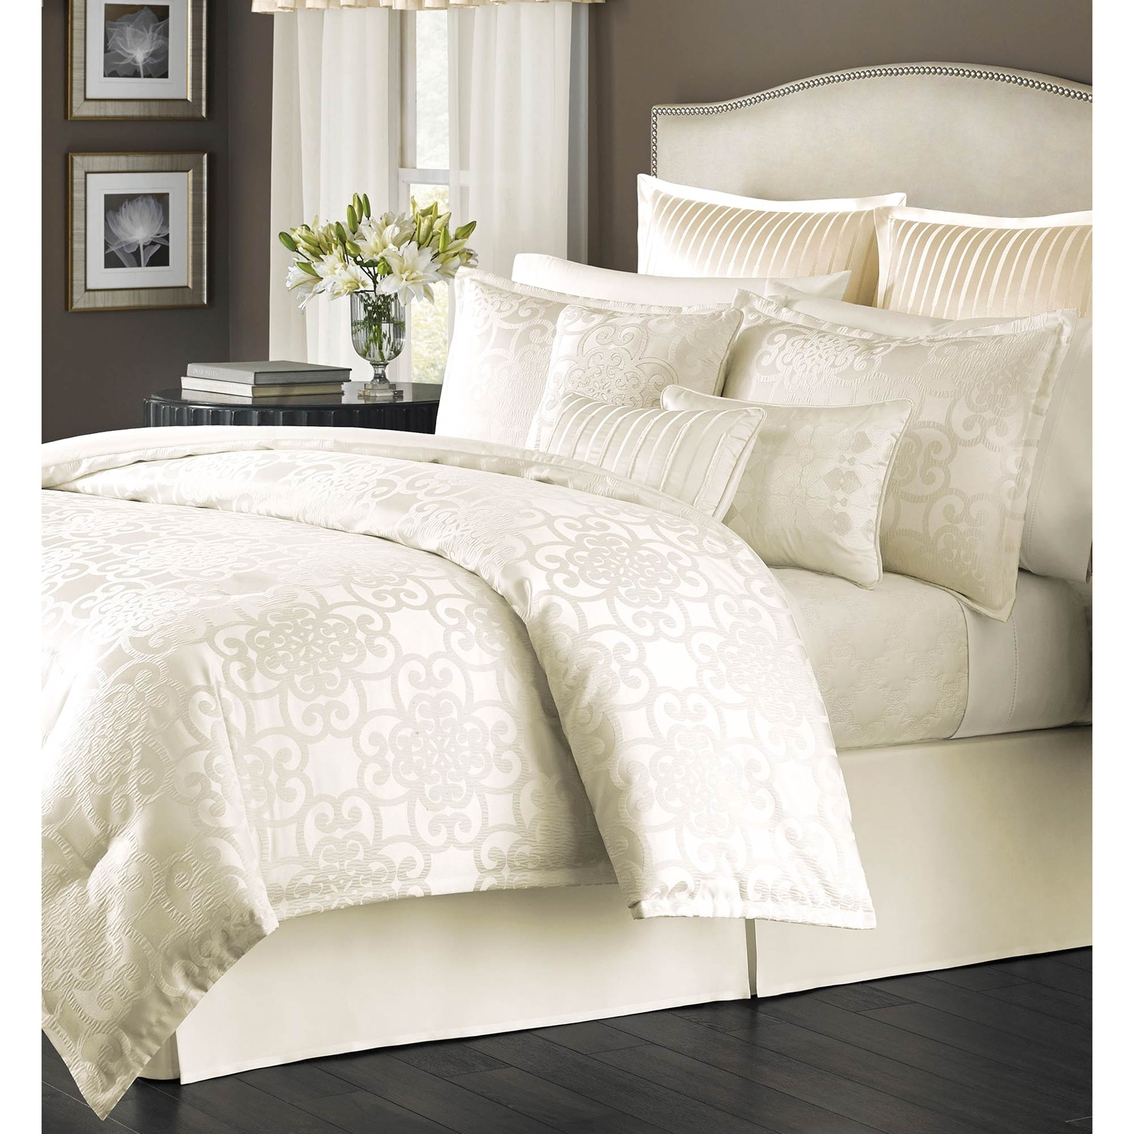 sequins silver a bedding ss aetherair wave kylie set comforter bed co asli sheets